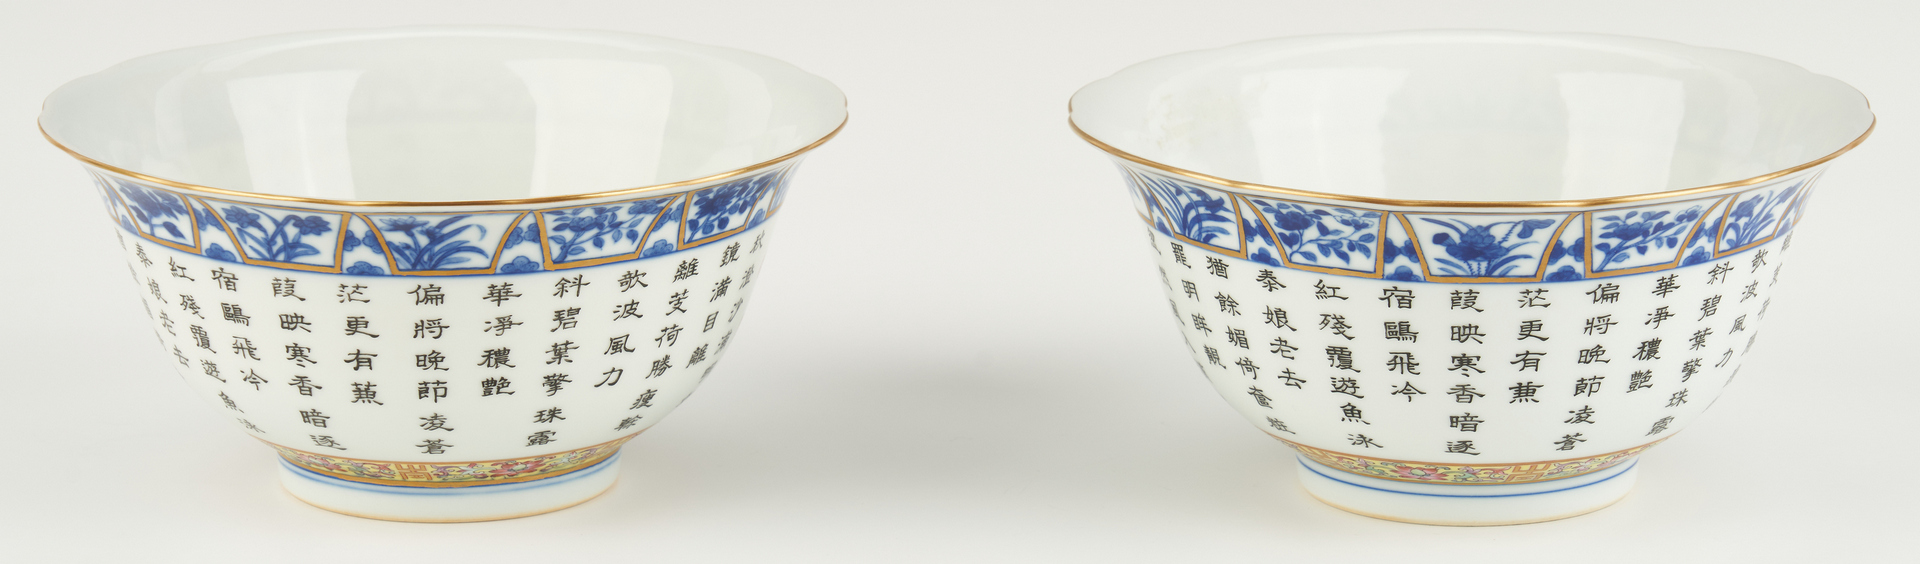 Lot 16: Pair Chinese Bowls with Calligraphy